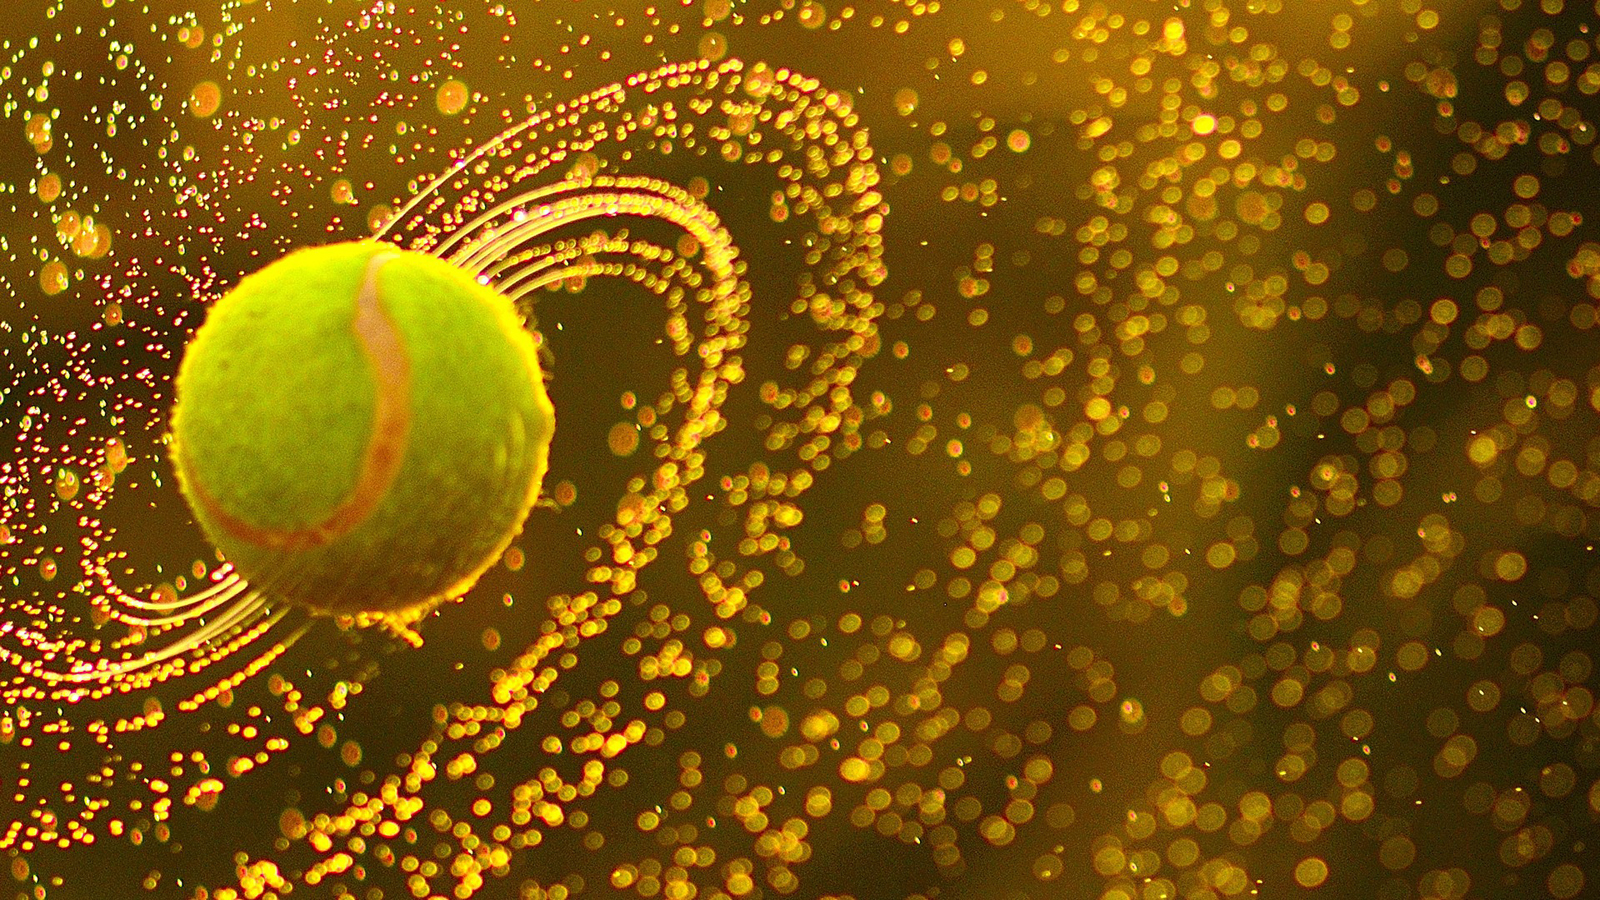 Tennis Ball 3D Champion 2013 Hd Desktop Wallpaper Football MR 1600x900